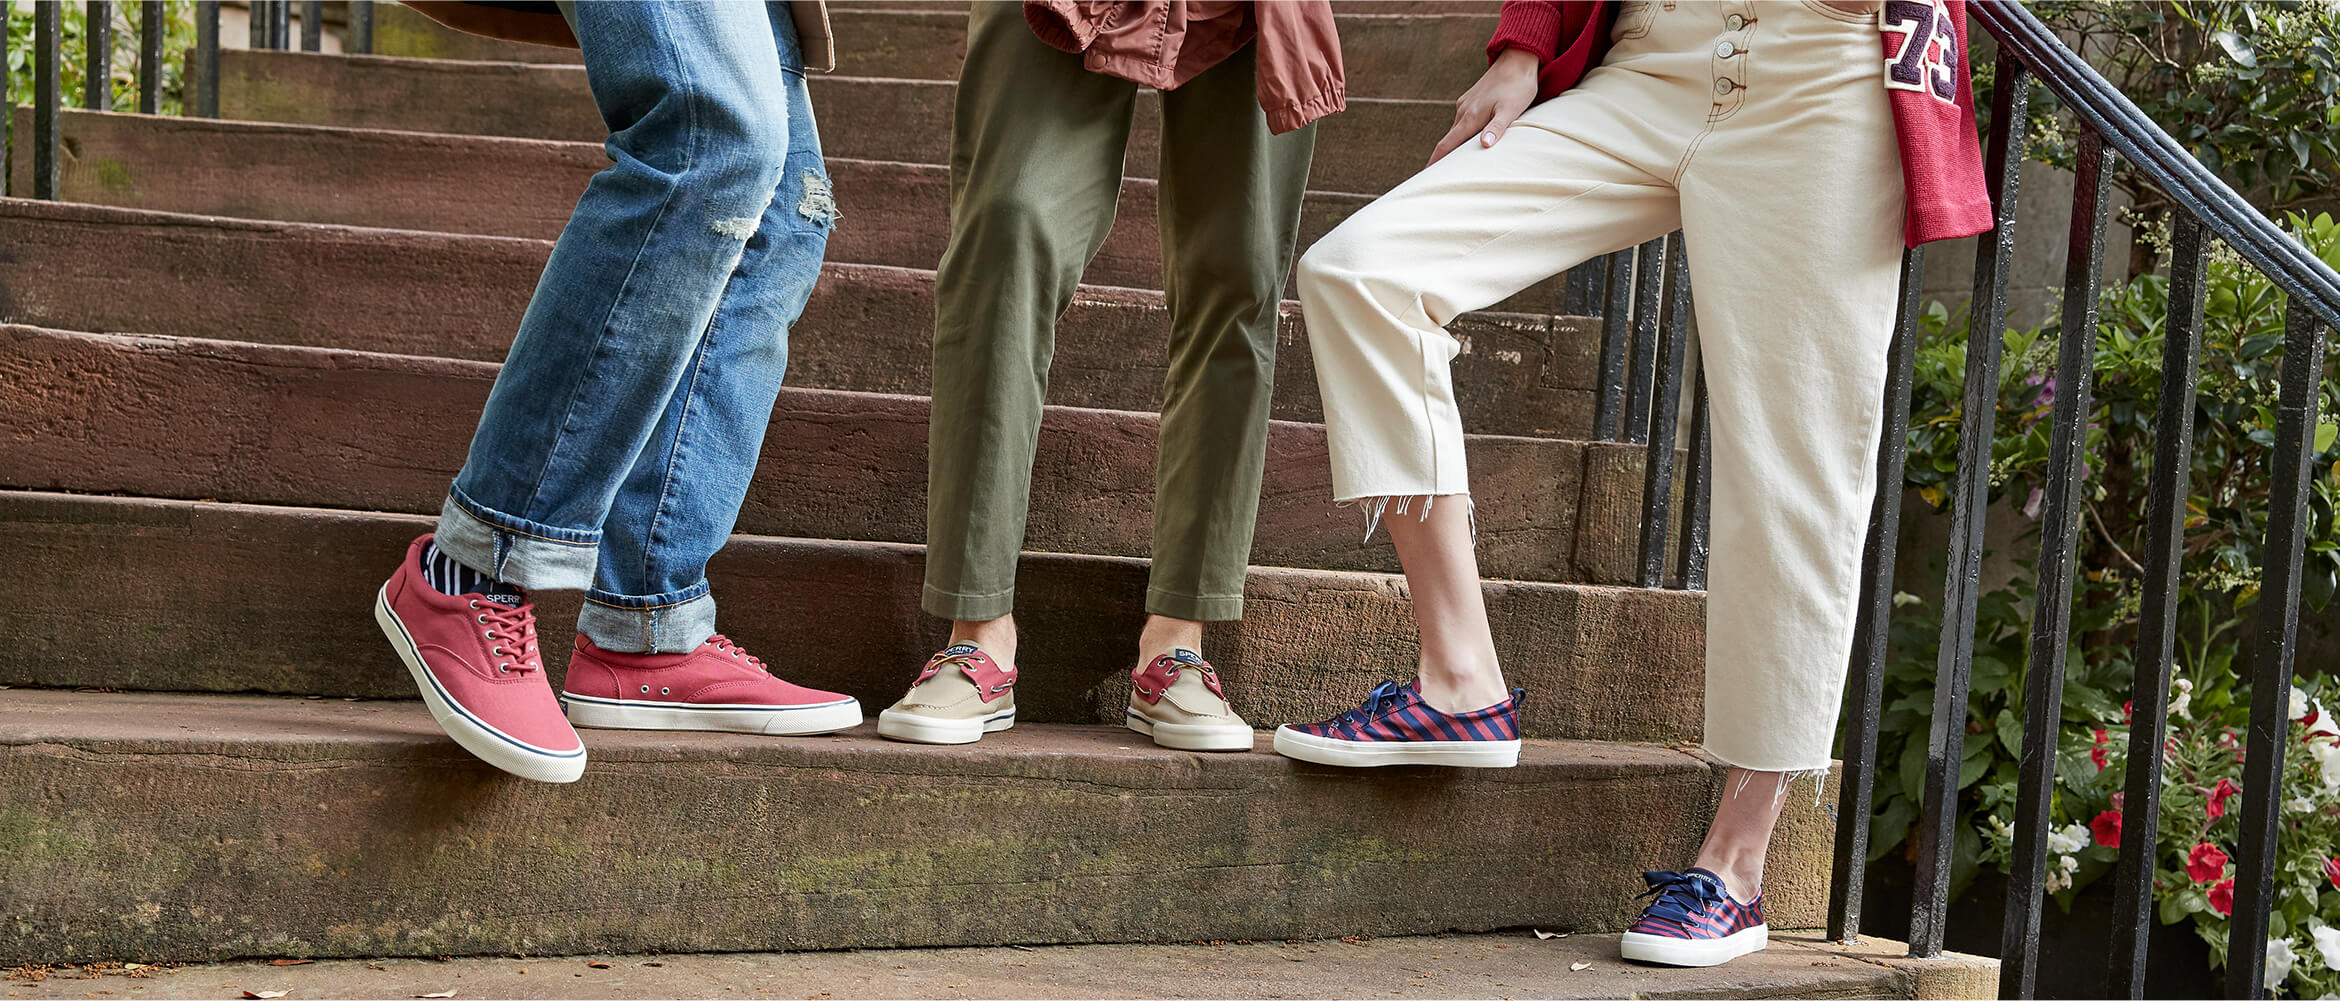 Three people stand on stone steps. We see them from the knees down and can't take our eyes off their shoes; they are totes fancy!